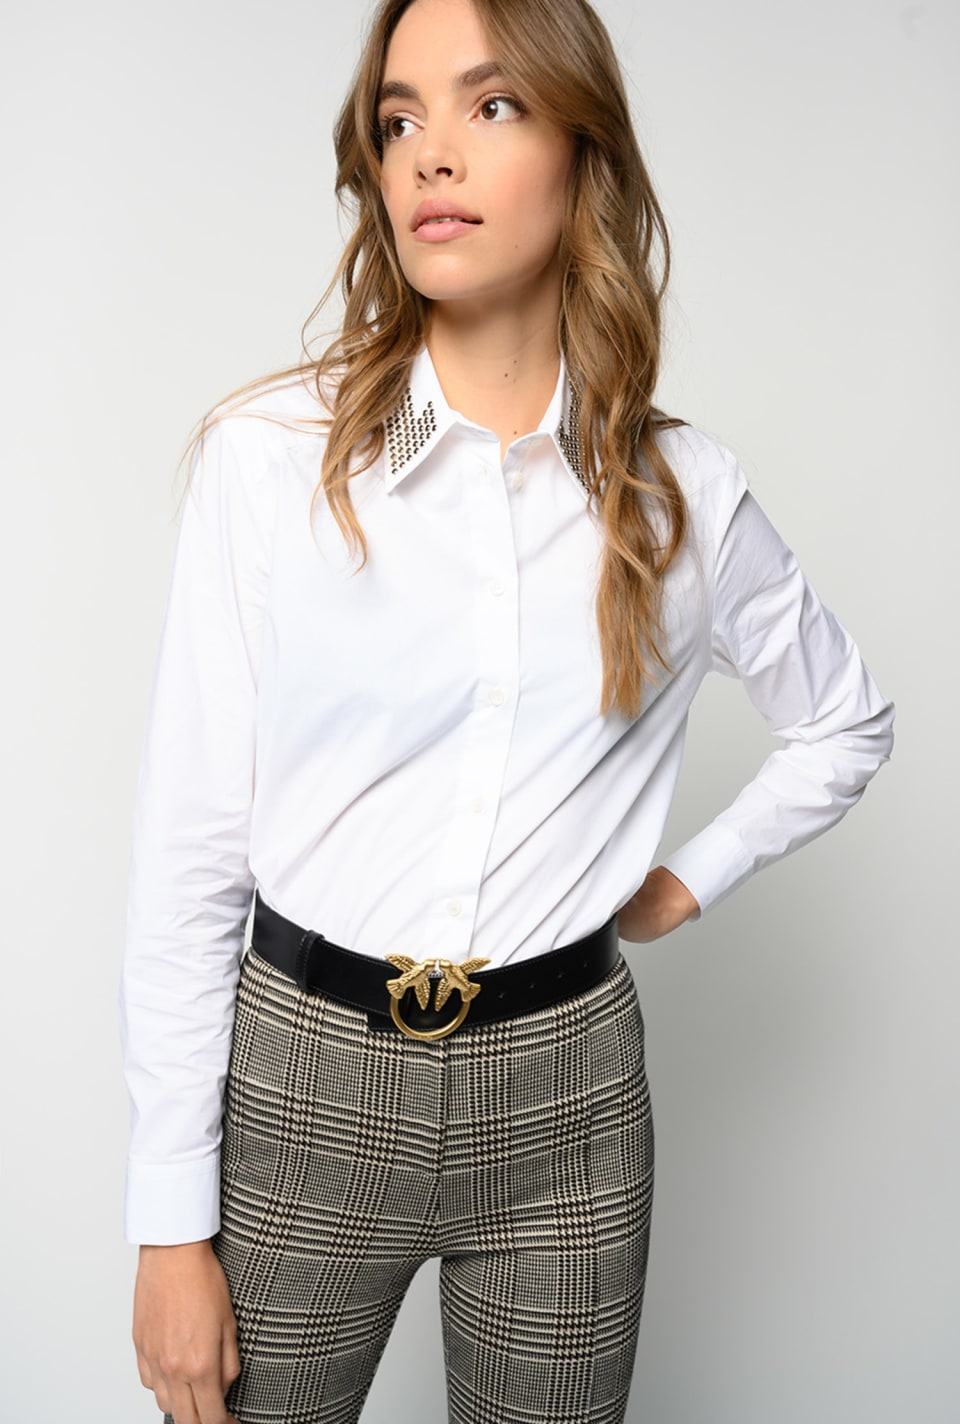 Poplin shirt with rhinestone collar - Pinko